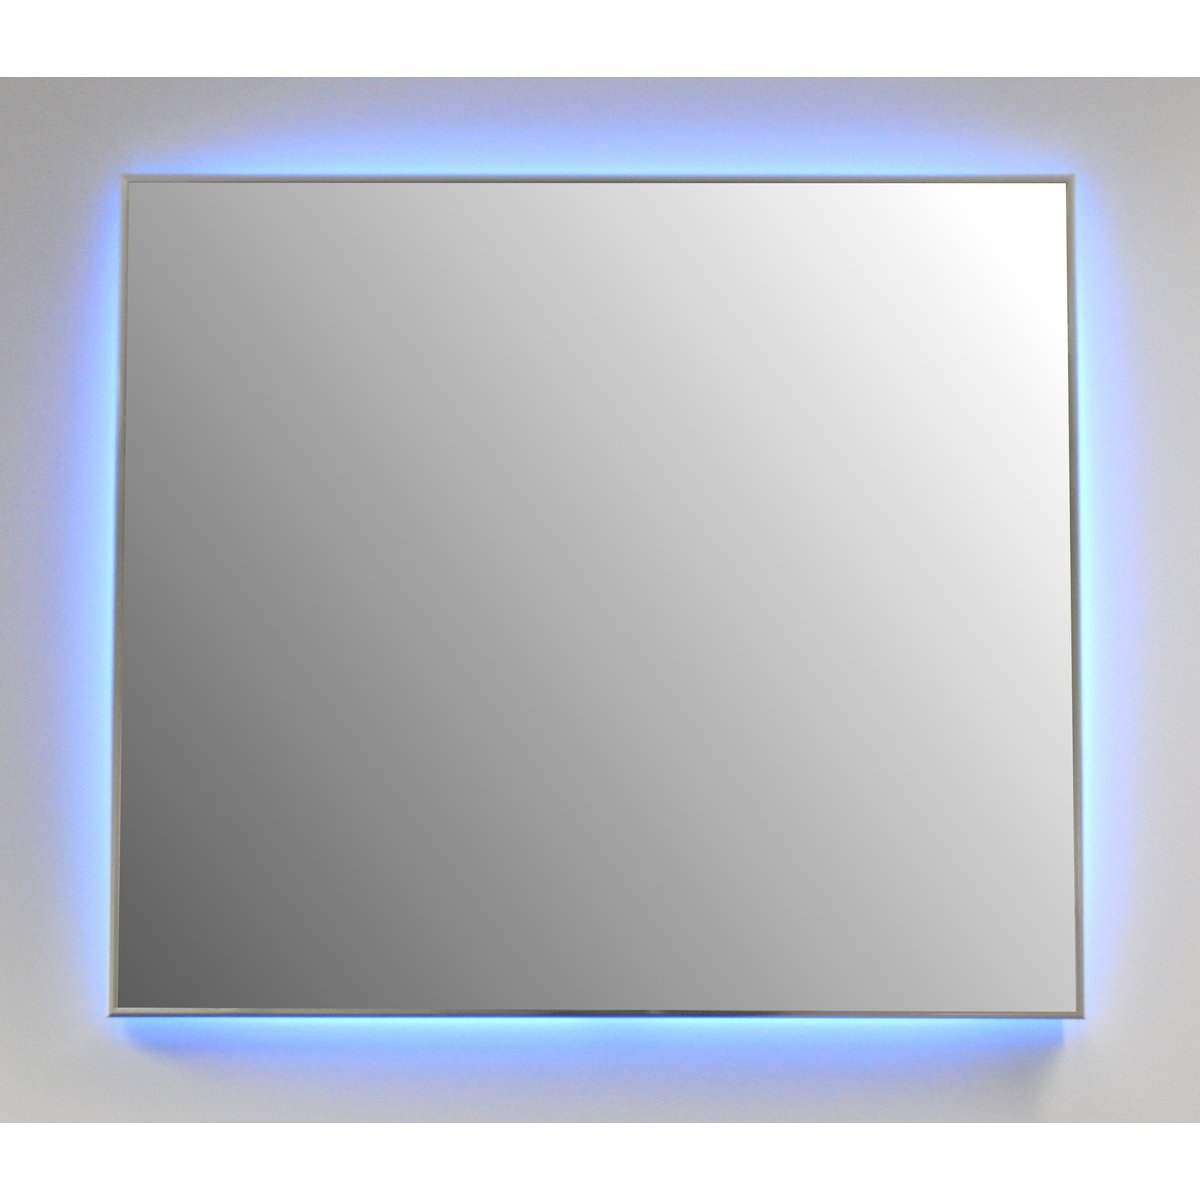 Qmirrors Ambiance spiegel 70x65 cm met omlijsting chroom incl LED ...